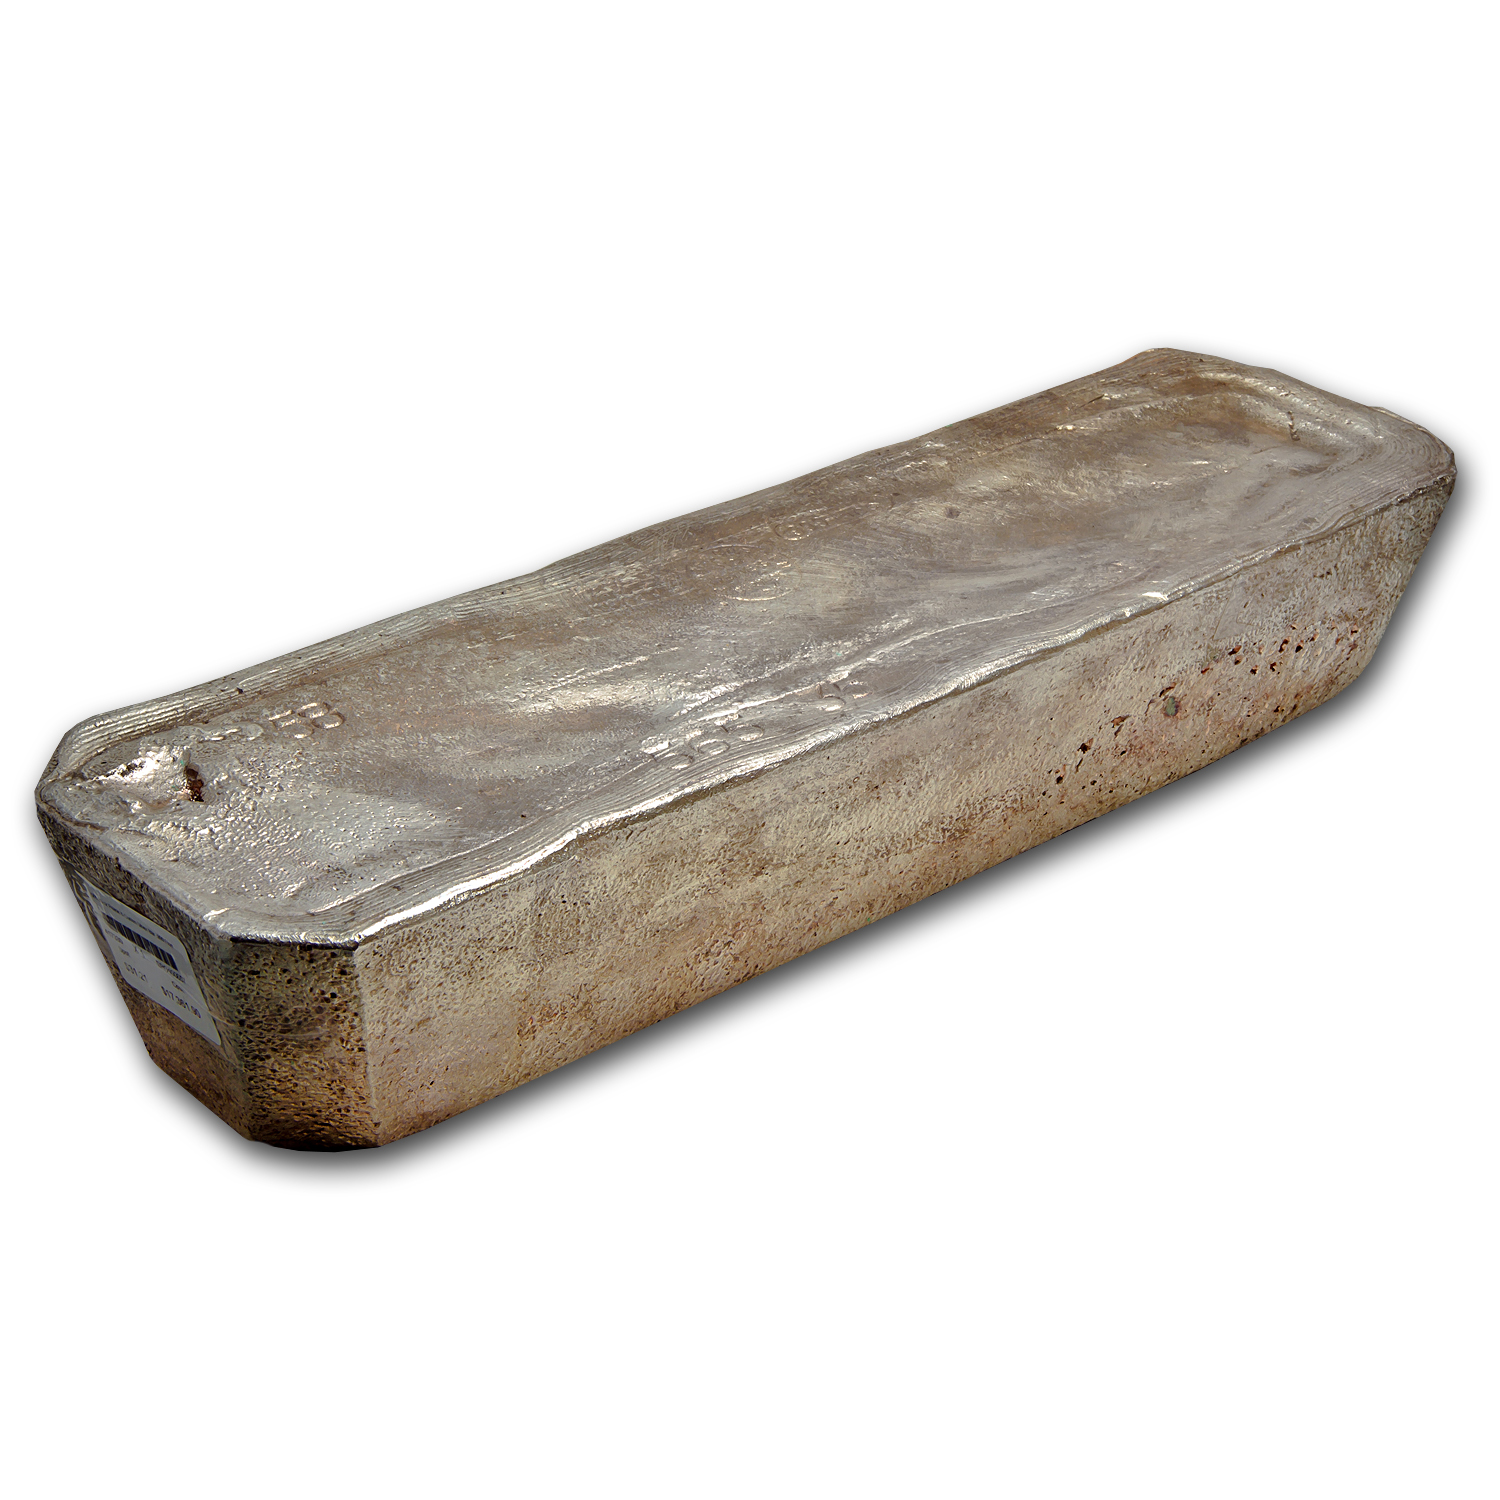 565.35 oz Silver Bar - Pease & Curren